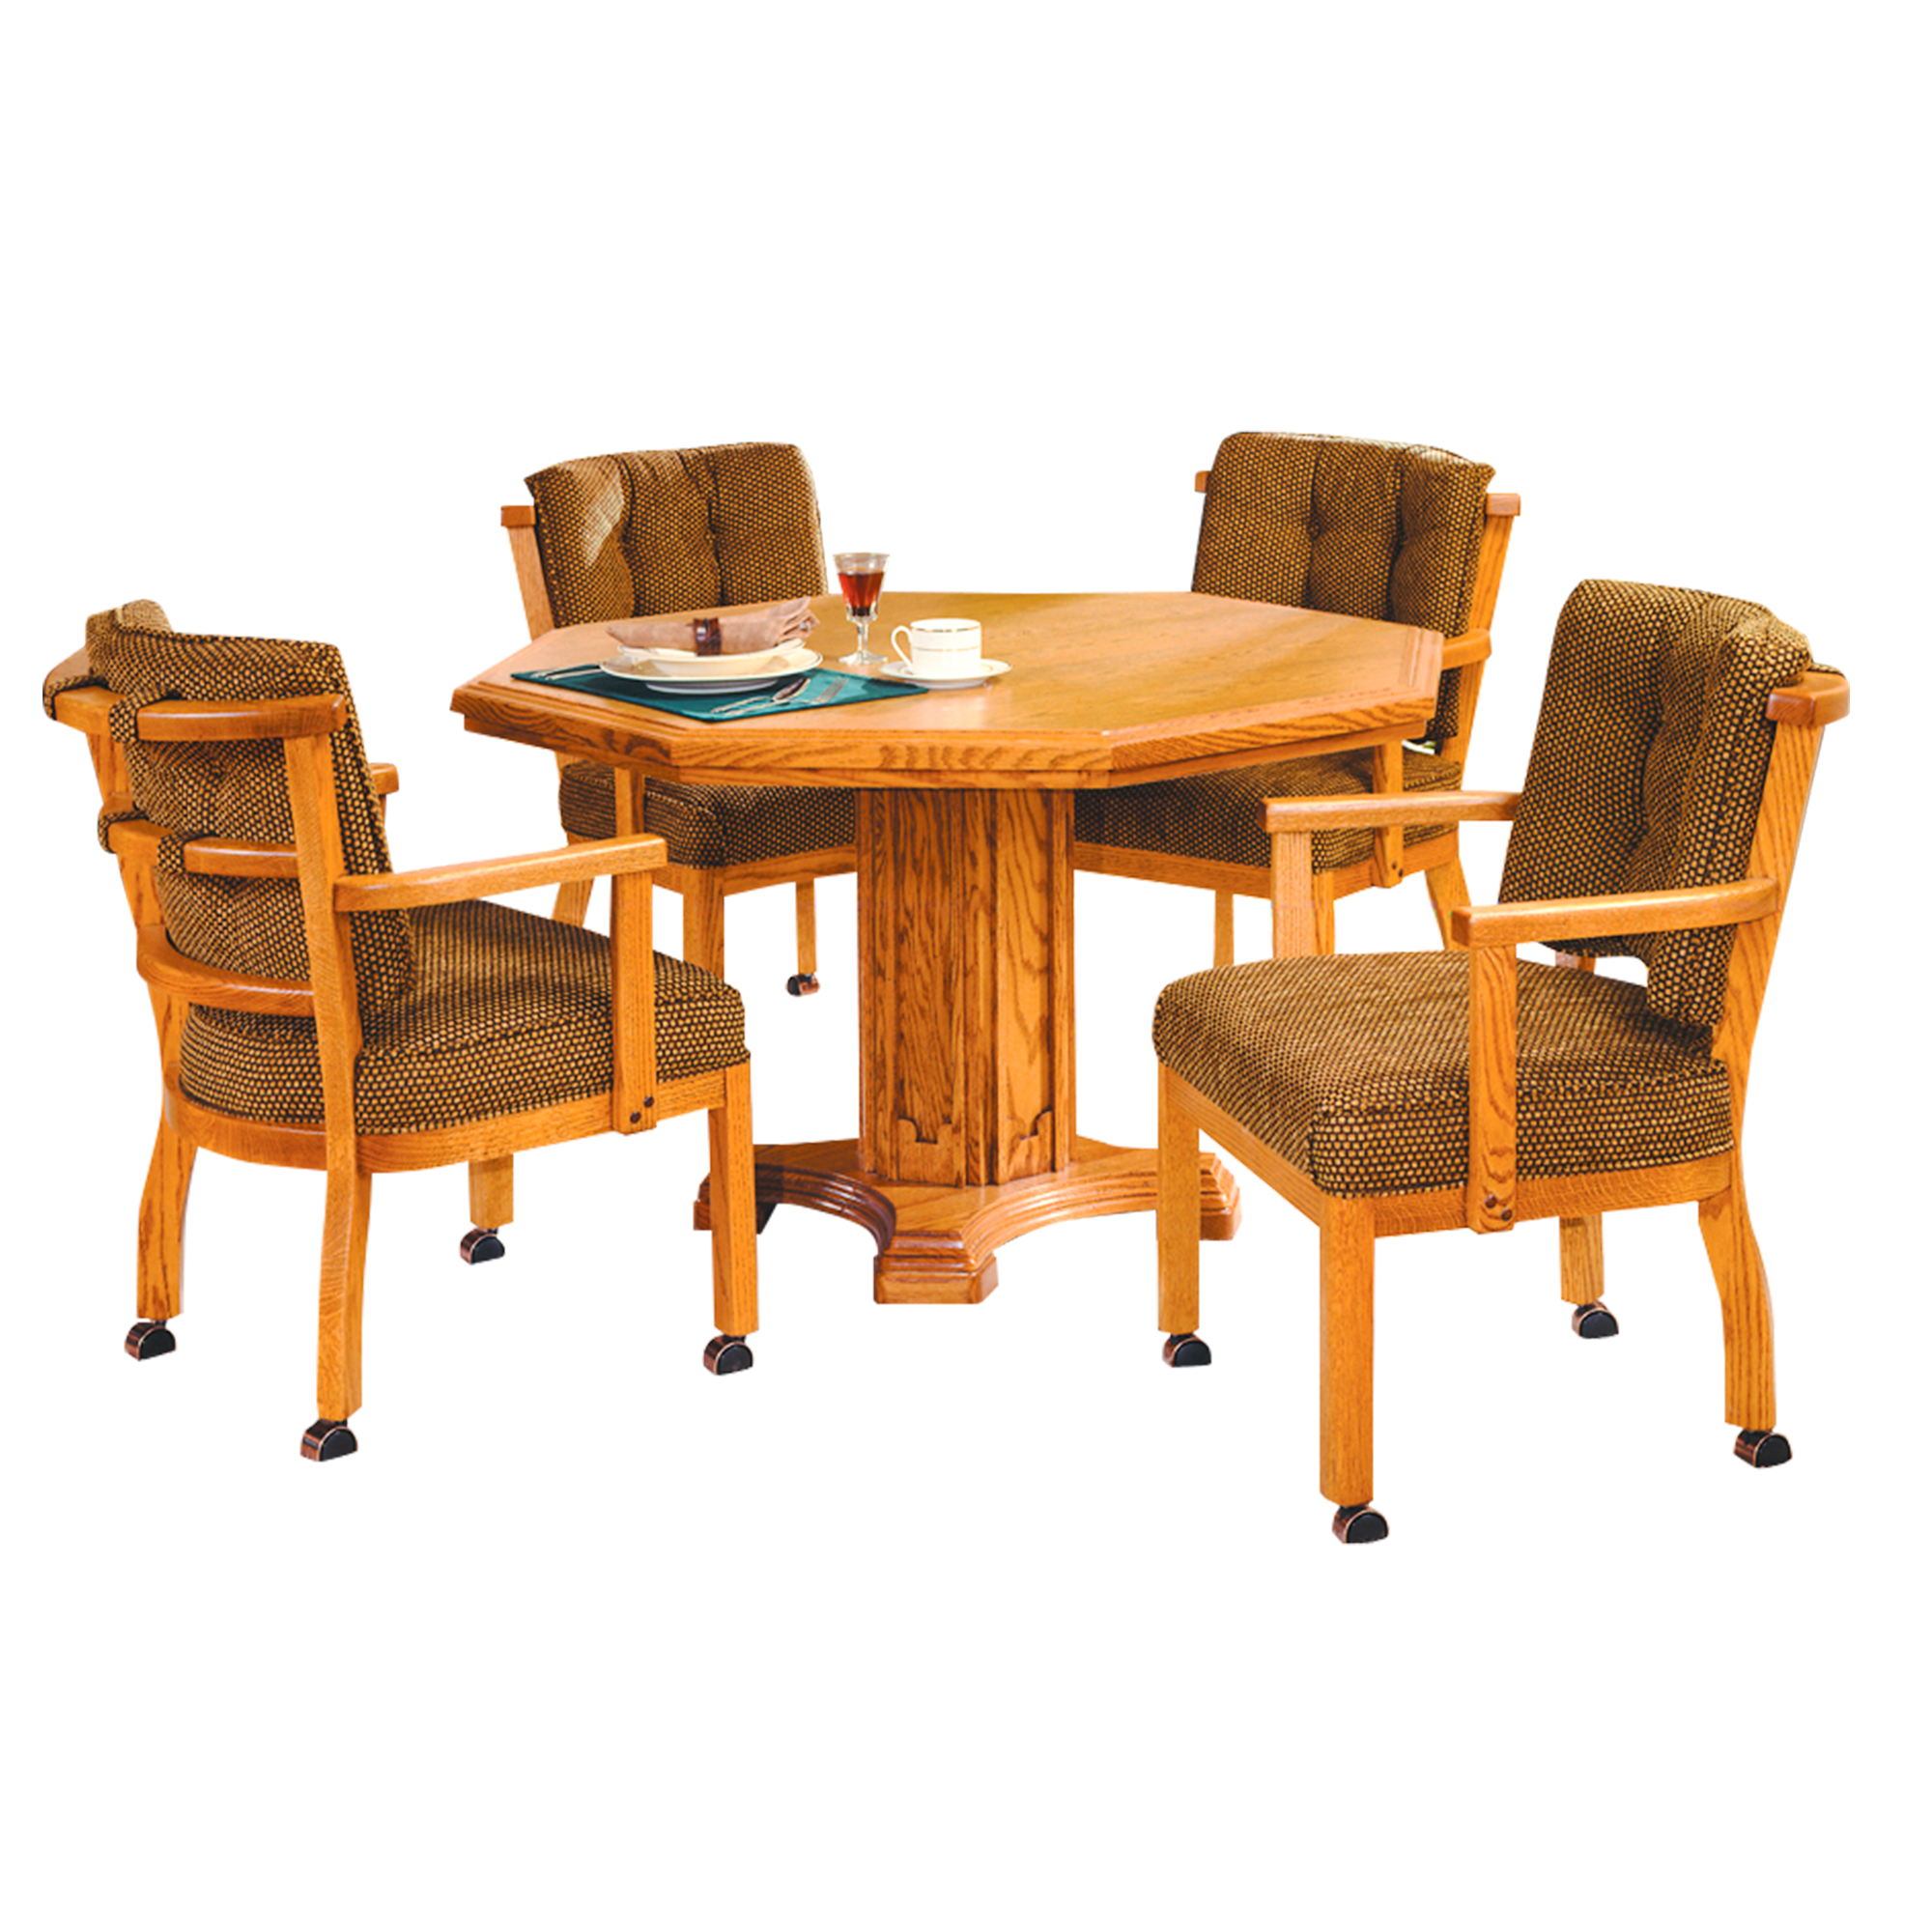 Fabulous T5224 Casual Dining Table C1506 4Lc Caster Chairs Download Free Architecture Designs Jebrpmadebymaigaardcom